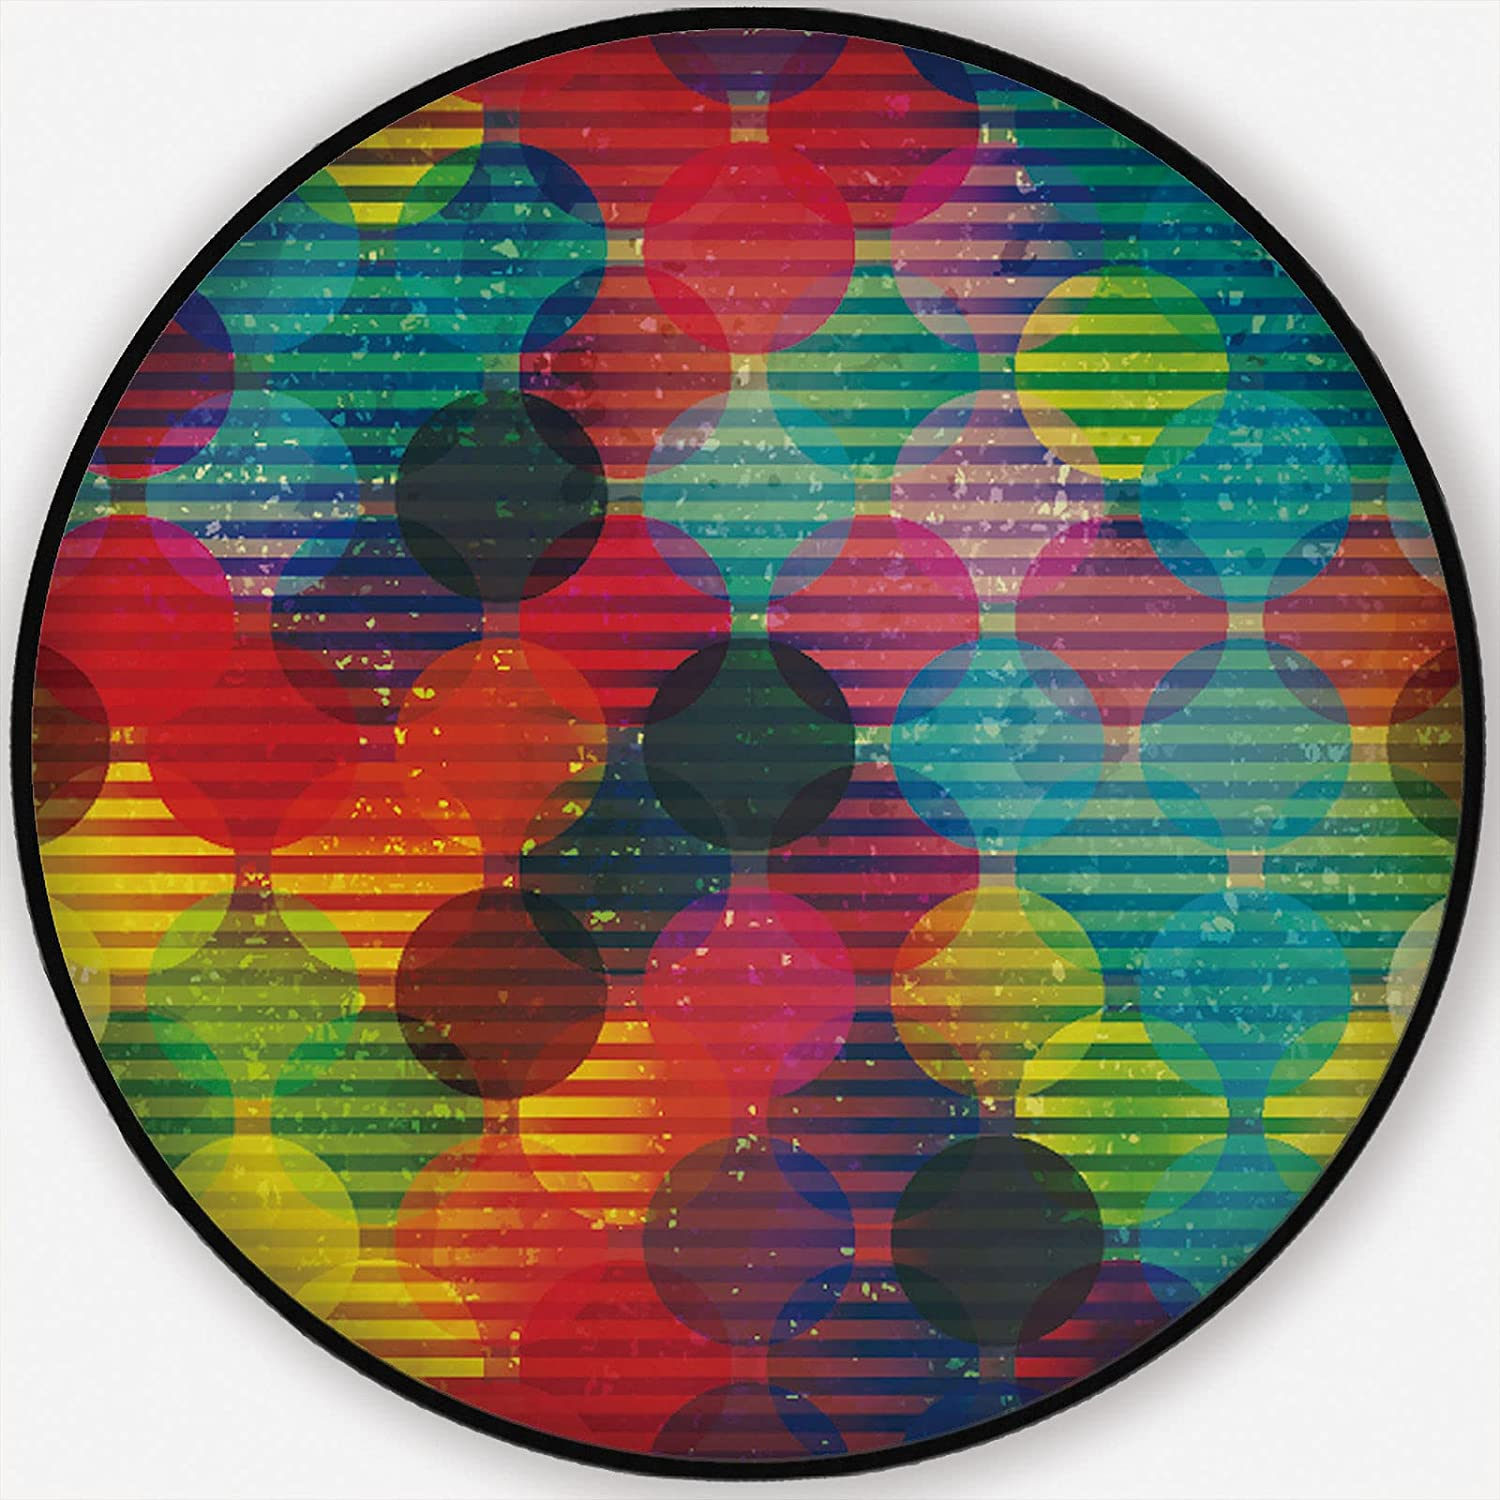 Retro Circle withEffect OFFicial shop Round Rug Carpet Backing Max 80% OFF Ro Non-Slip